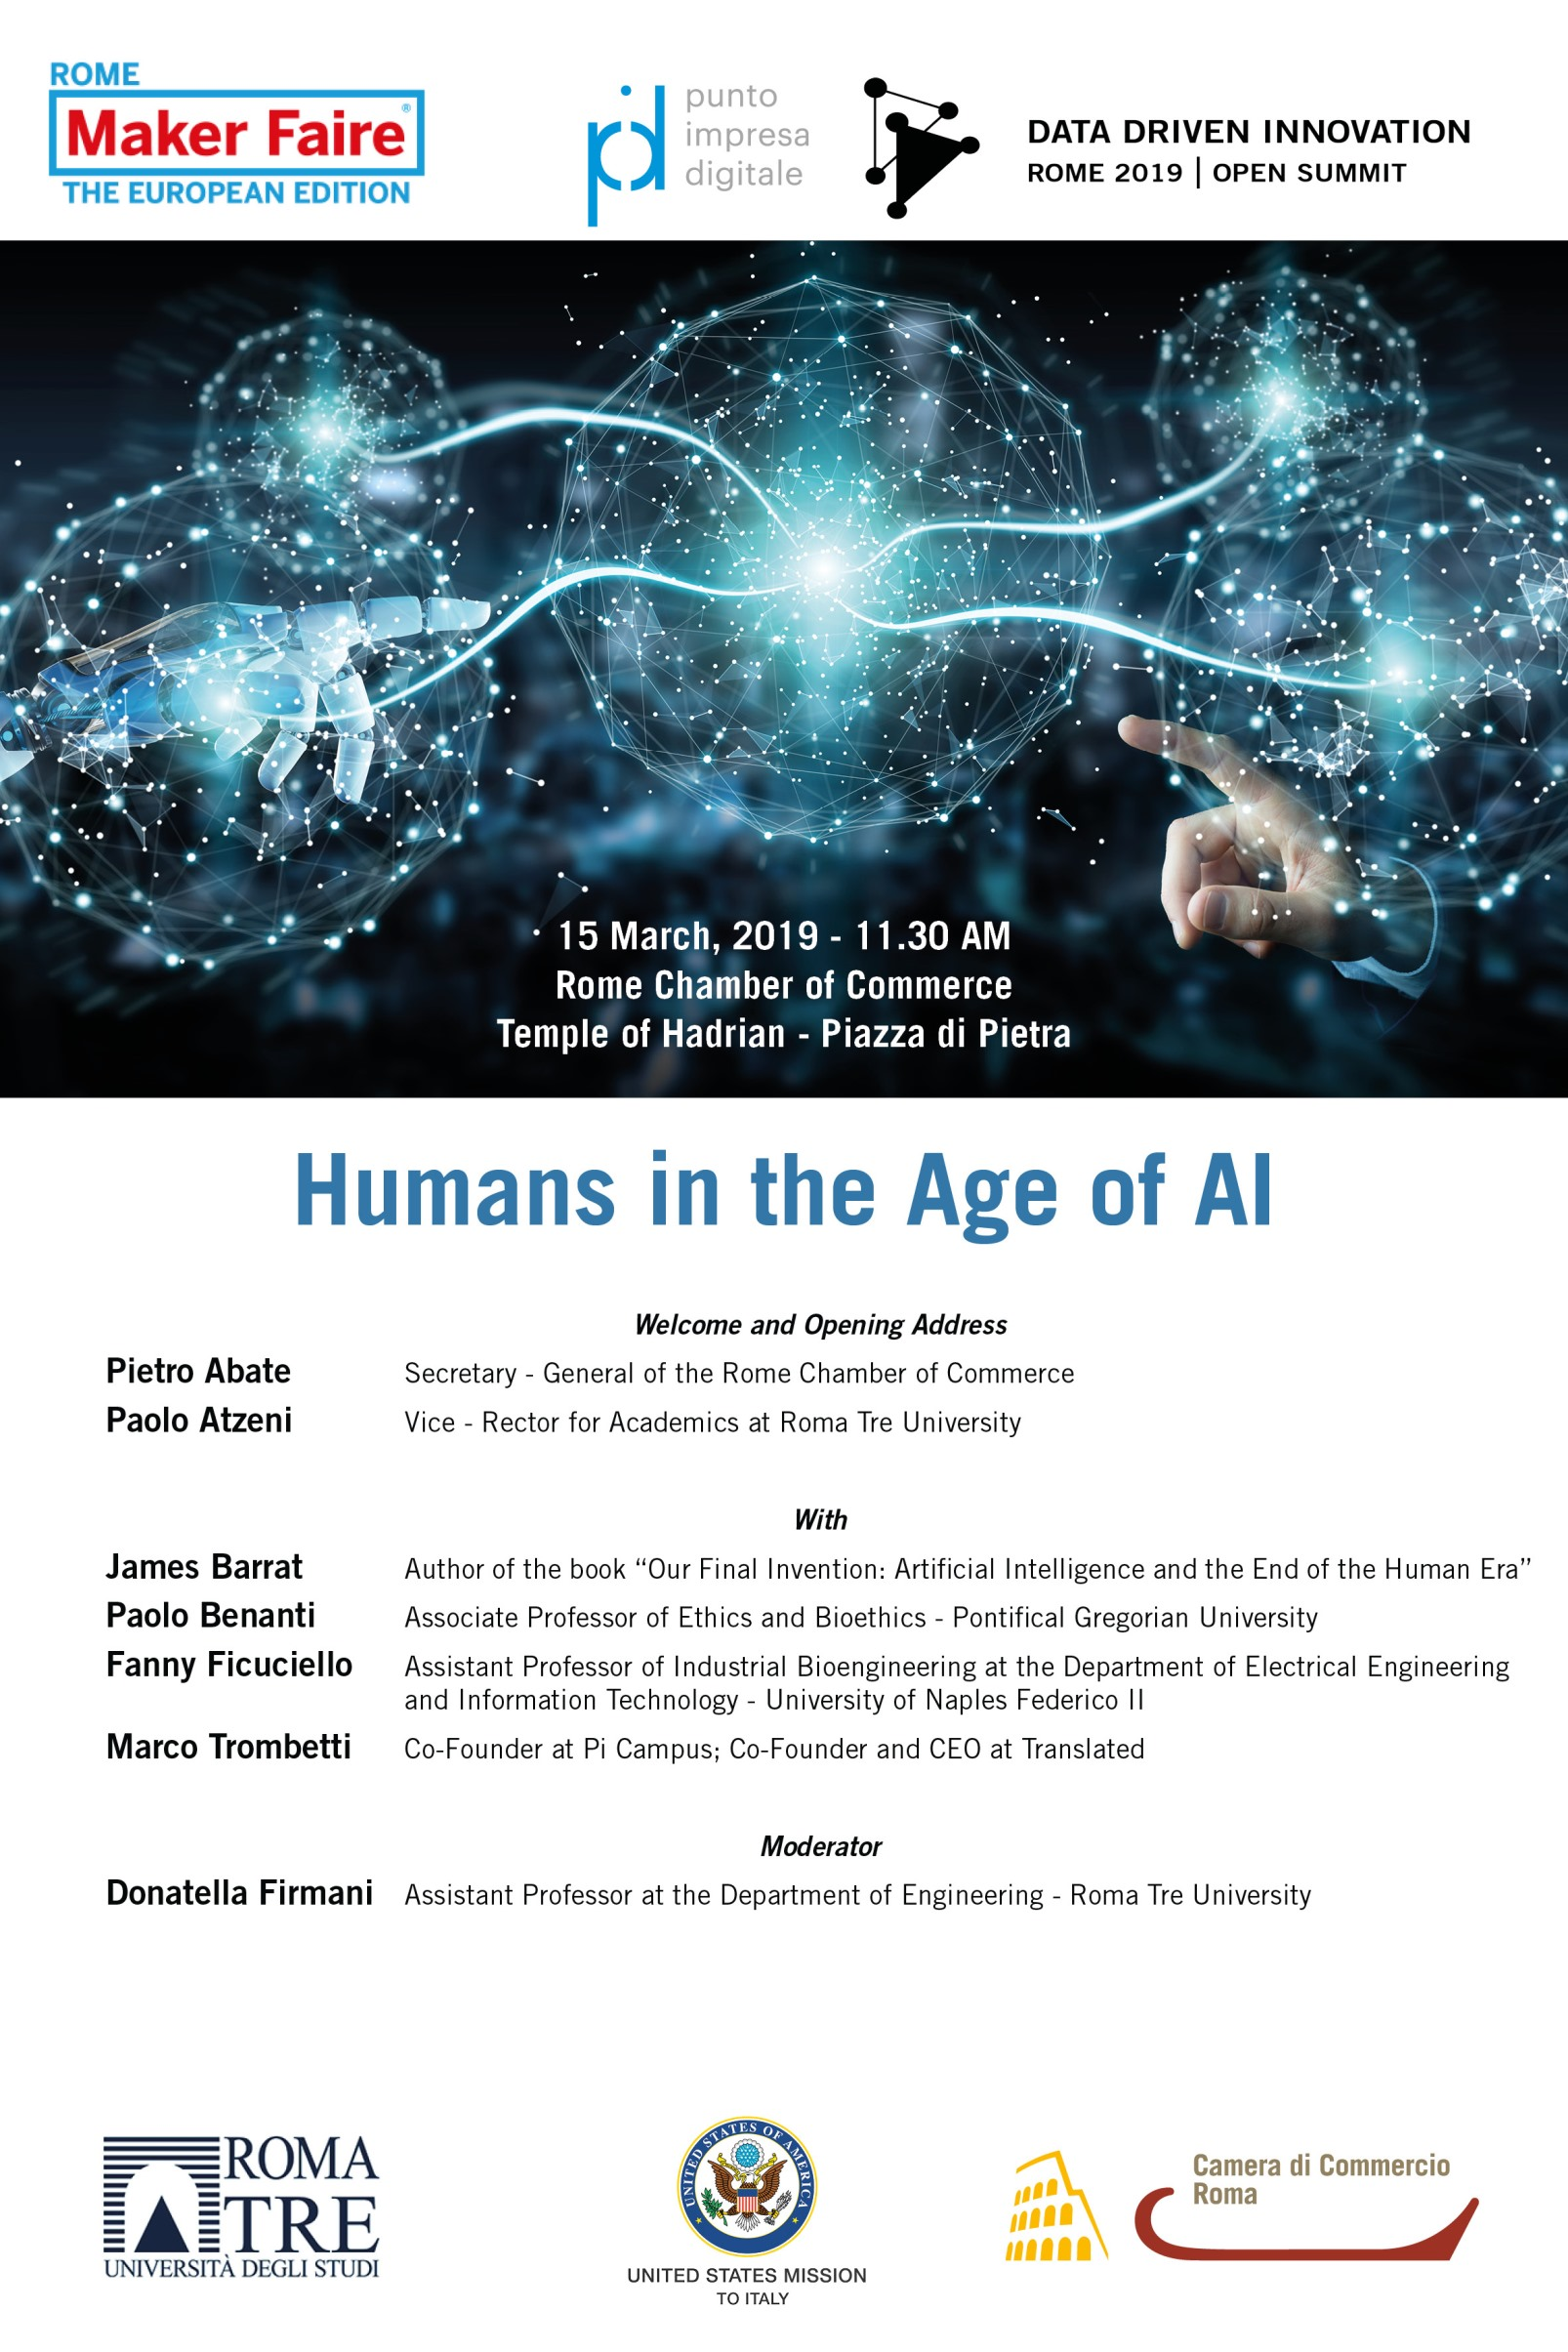 Humans in the Age of AI